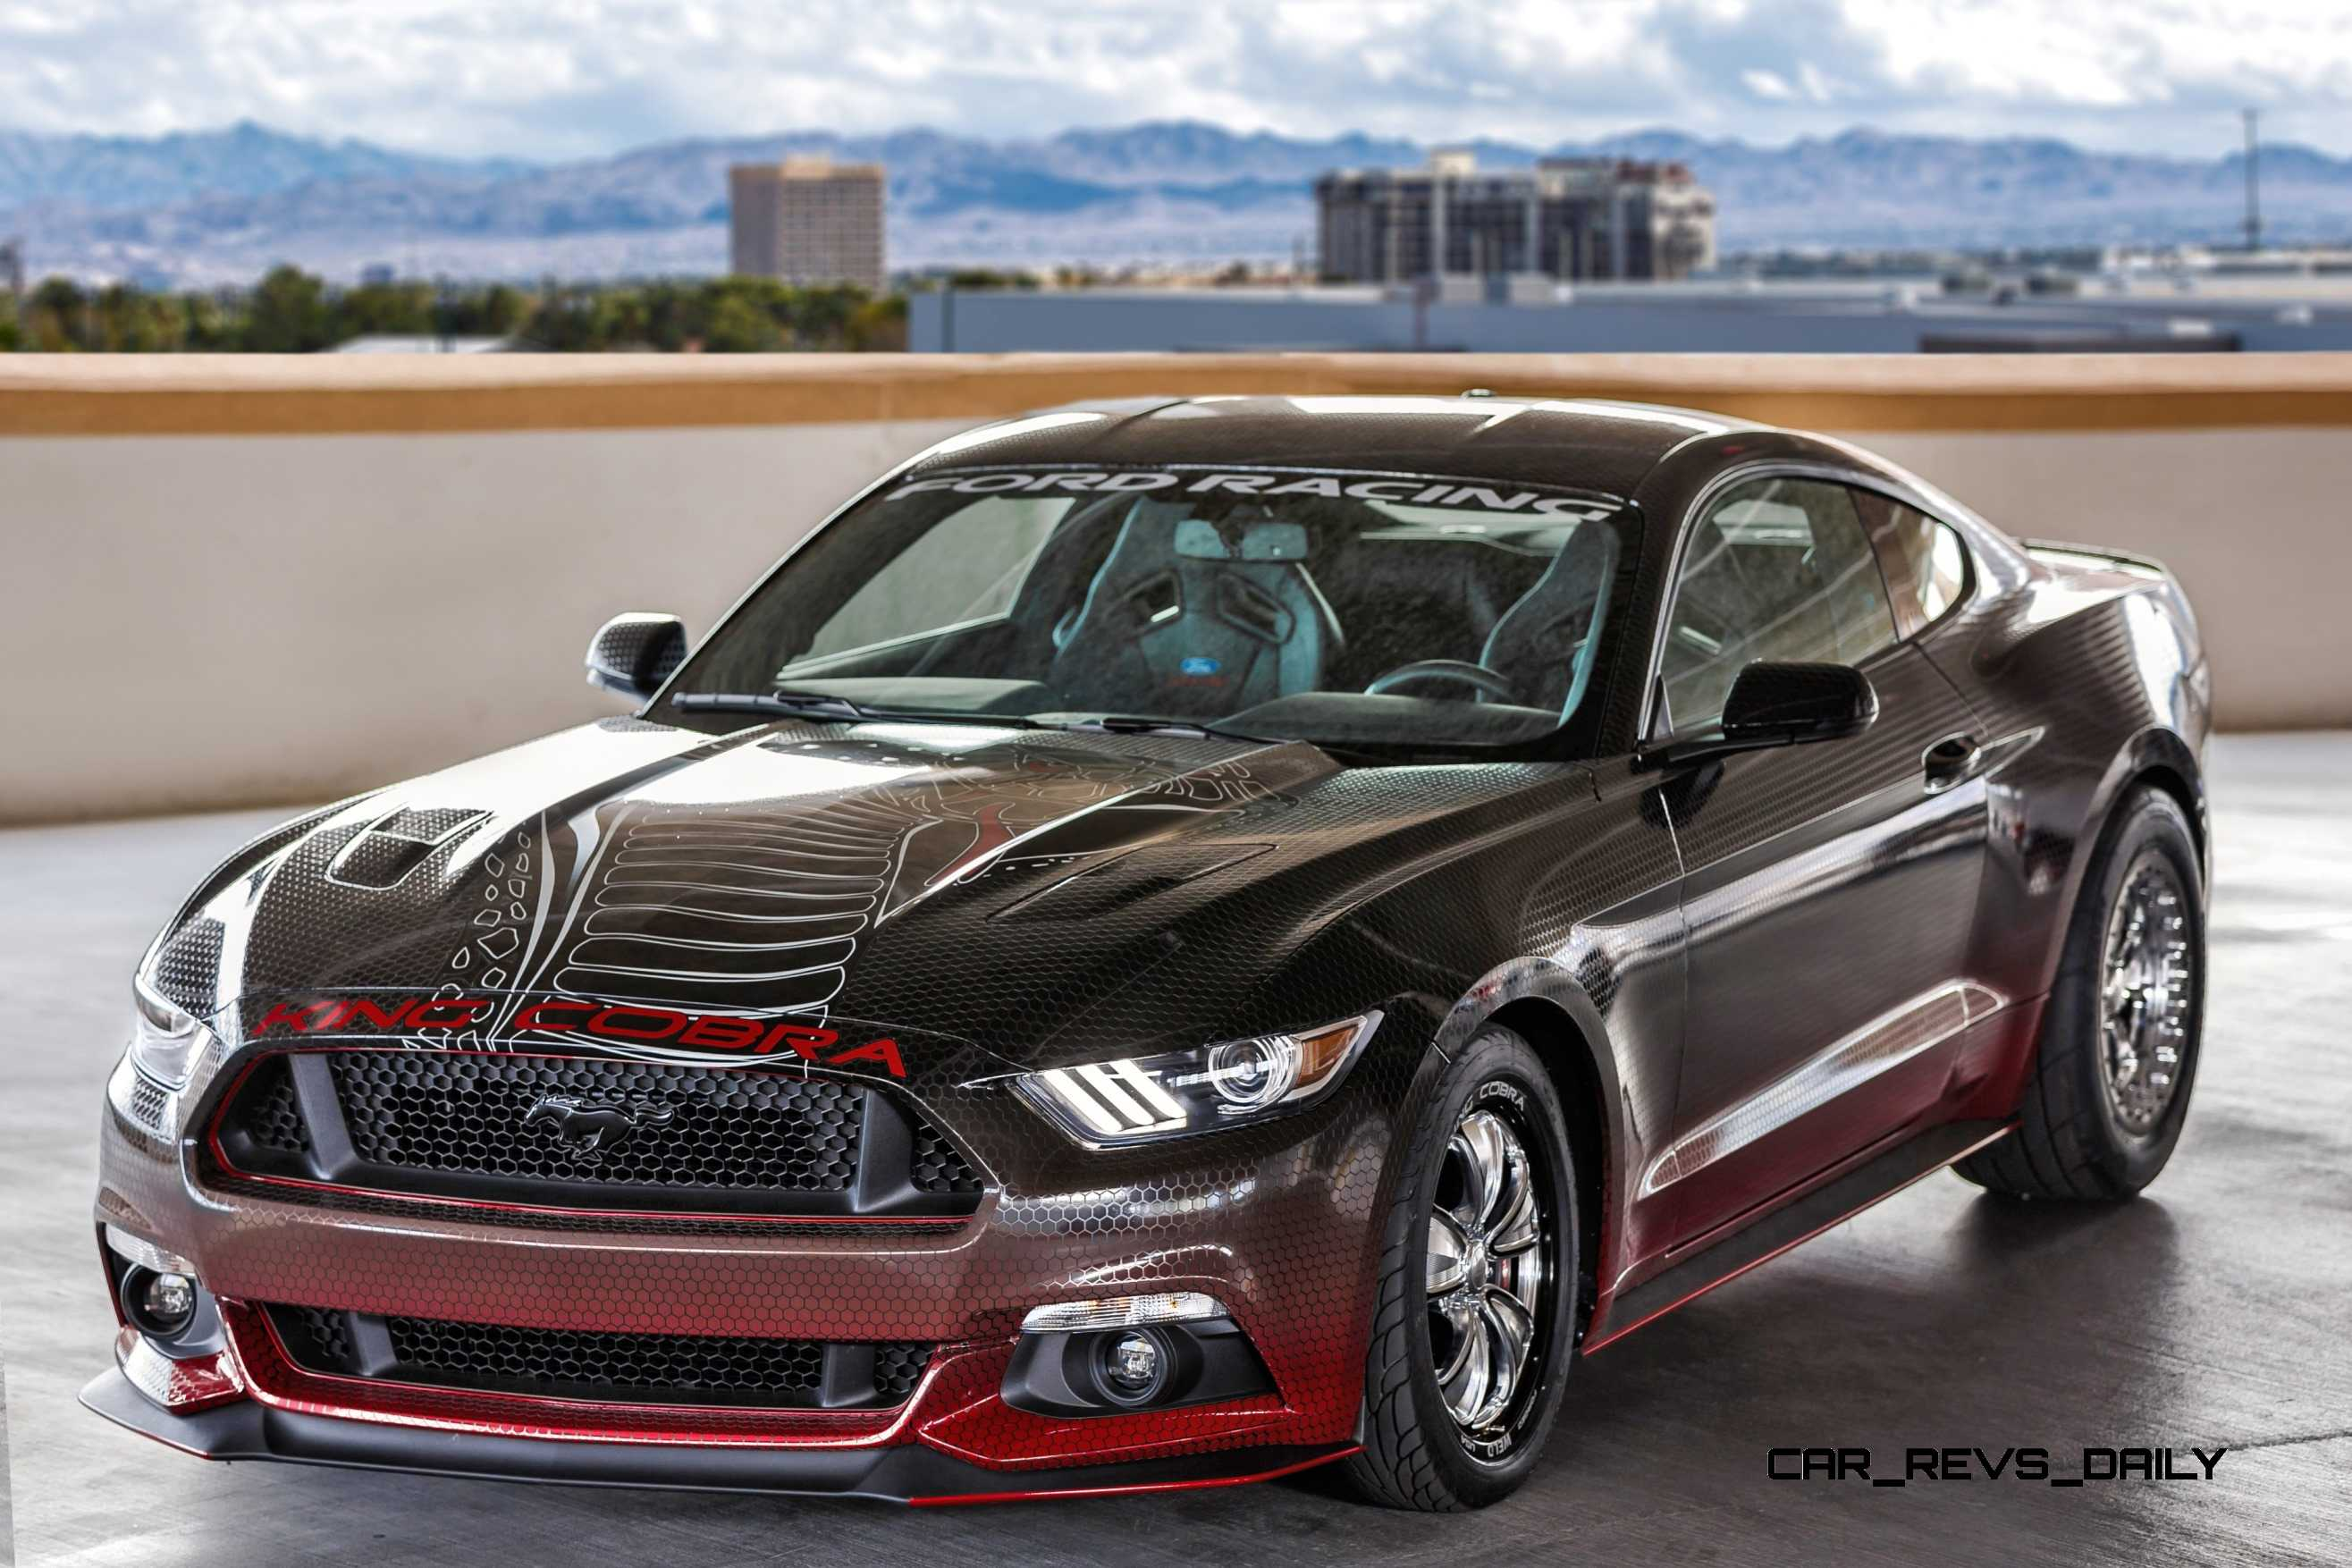 Cobra Kit Car >> 2015 Ford Mustang KING COBRA Is 625HP Factory-Parts Cobra Jet Upgrade List!